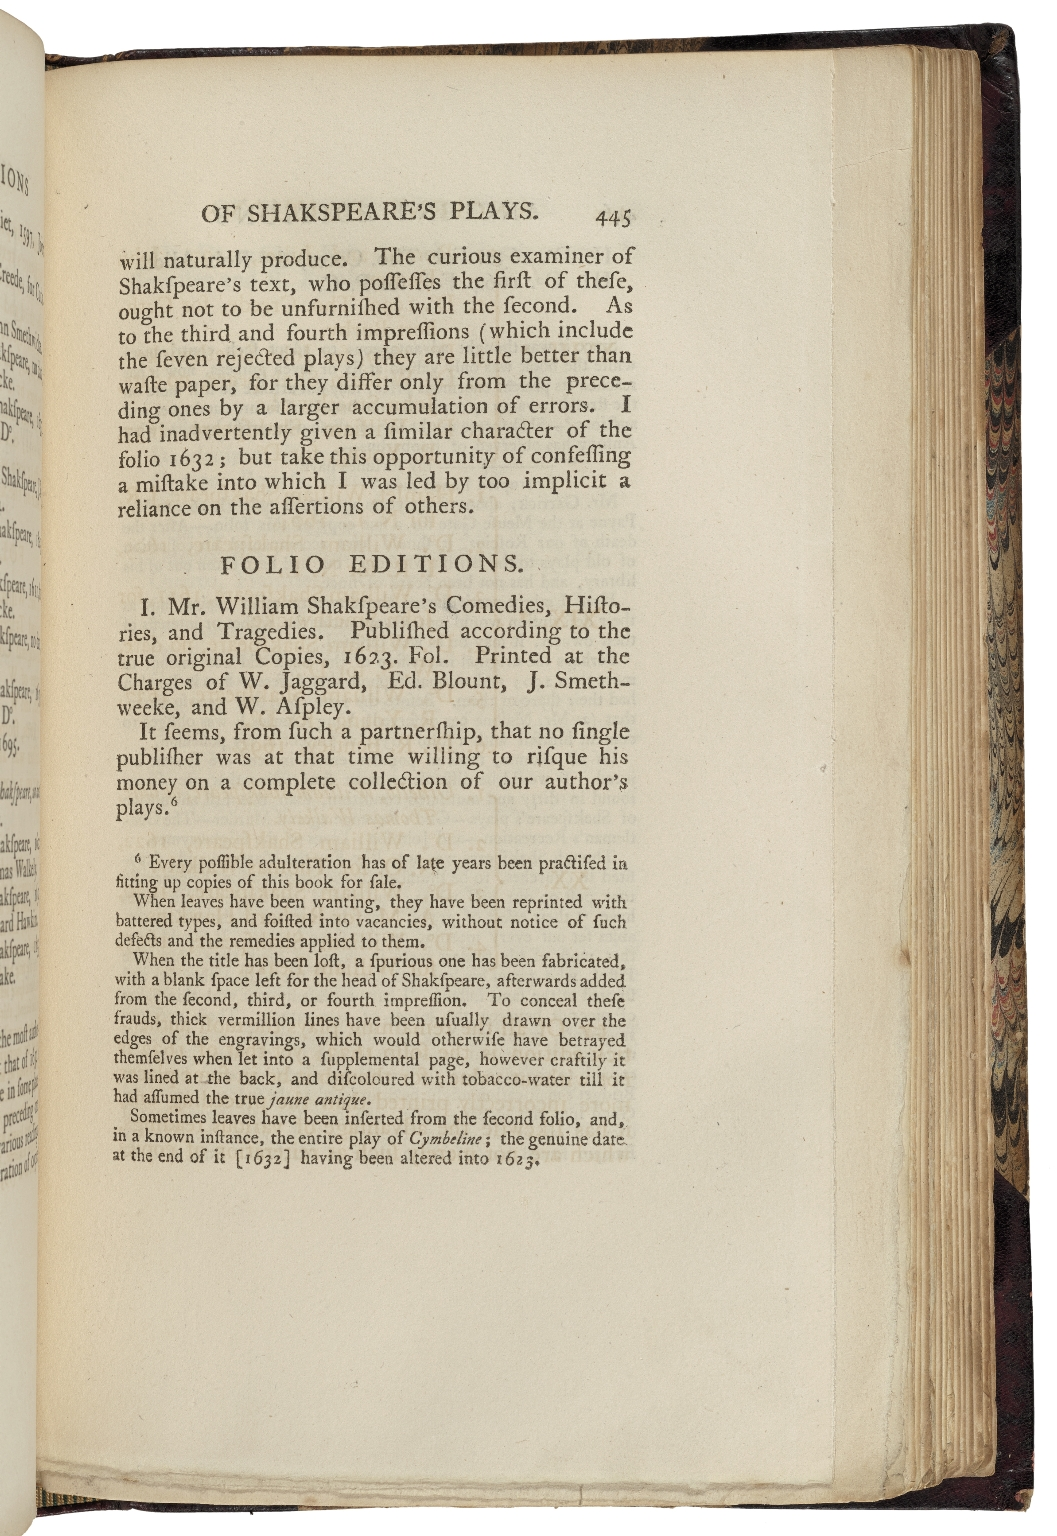 [Plays. 1793. T. Longman] The plays of William Shakspeare : in fifteen volumes : with the corrections and illustrations of various commentators : to which are added notes / by Samuel Johnson and George Steevens.